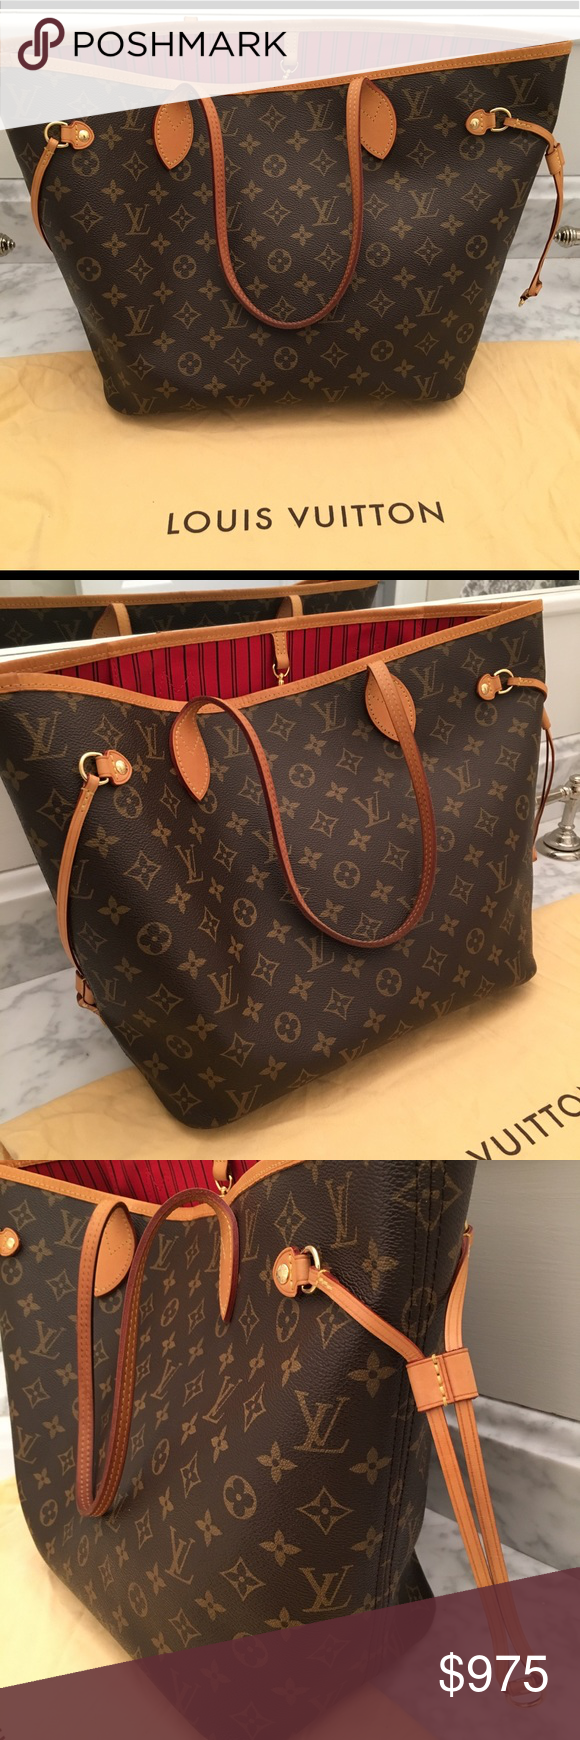 Authentic Louis Vuitton neverfull mm Authentic LV Neverfull mm in good  condition. Includes dust bag.    does not include pouch. bda1bcb52e